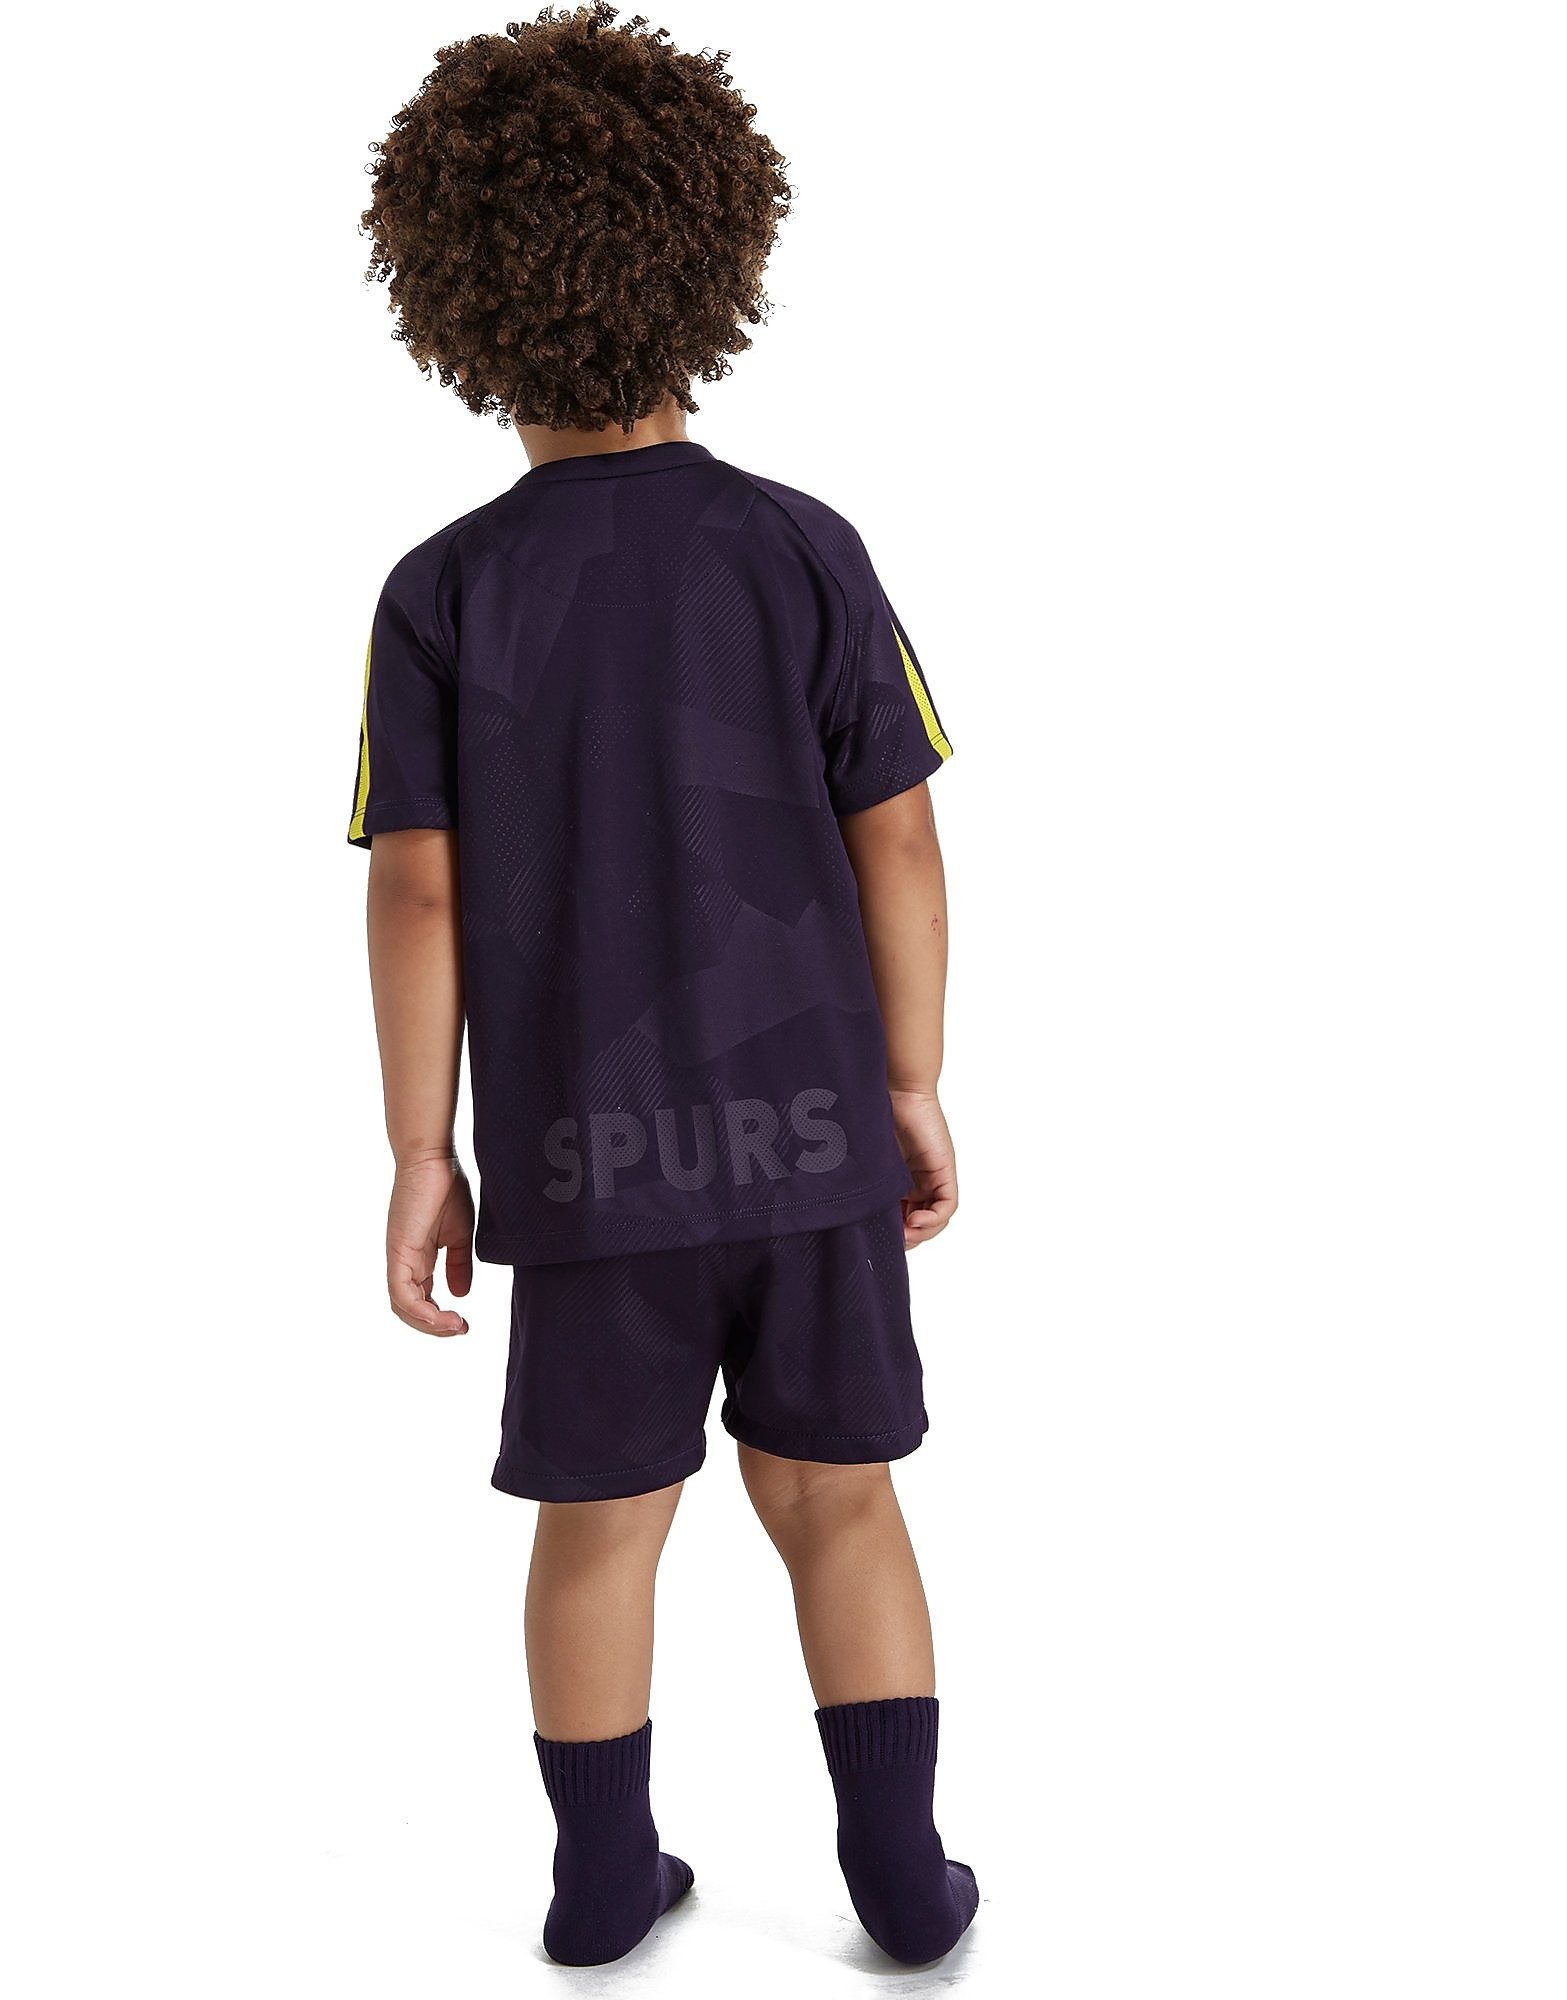 Nike Tottenham Hotspur FC 2017/18 Third Kit Infant